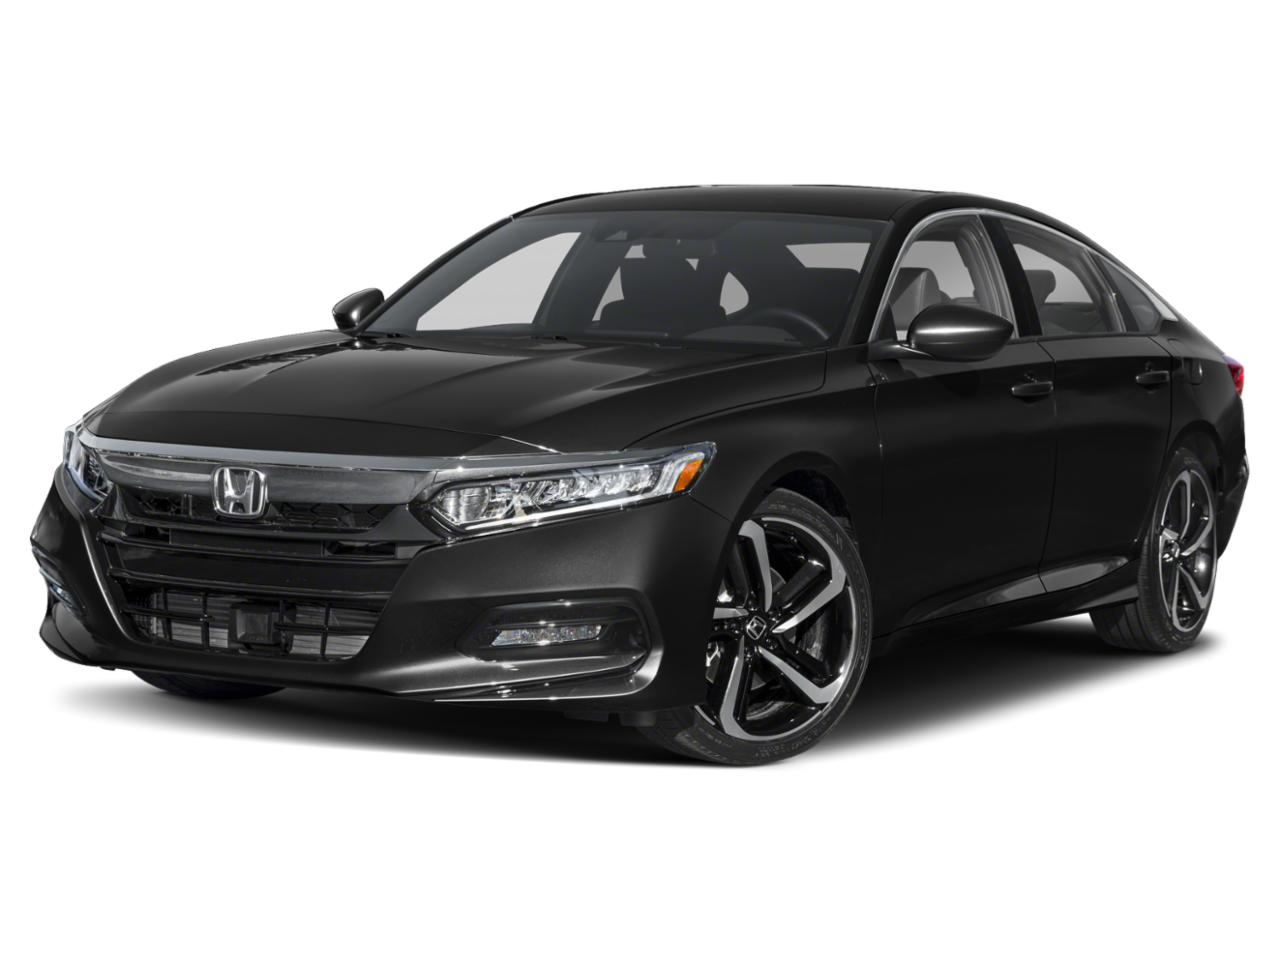 2019 Honda Accord Sedan Vehicle Photo in Rosenberg, TX 77471